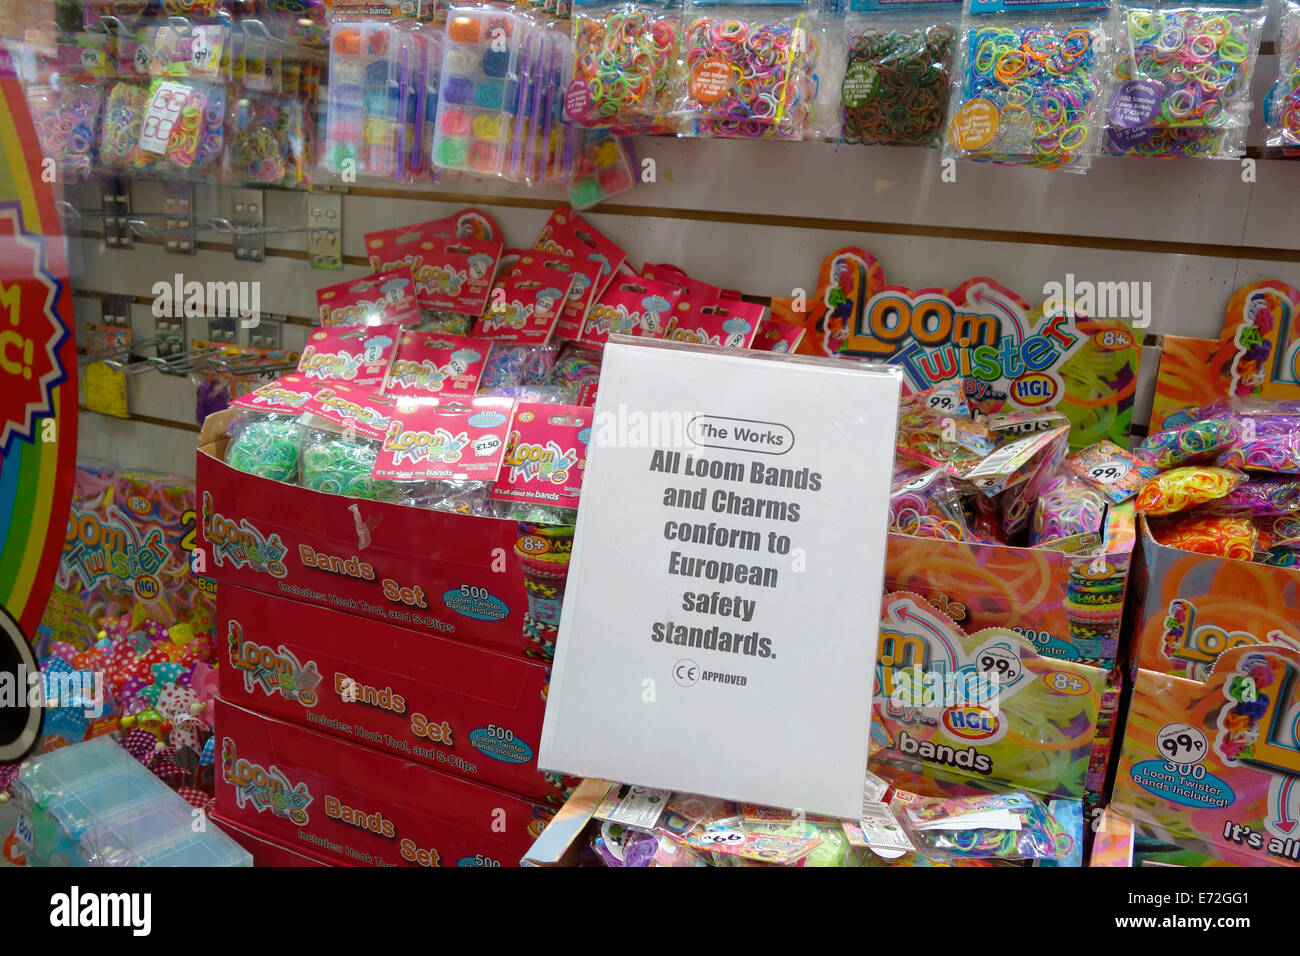 Exeter Uk 04/09/14. After scares about toxic chemicals in Loom Bands a retailer reassures buyers that they conform - Stock Image